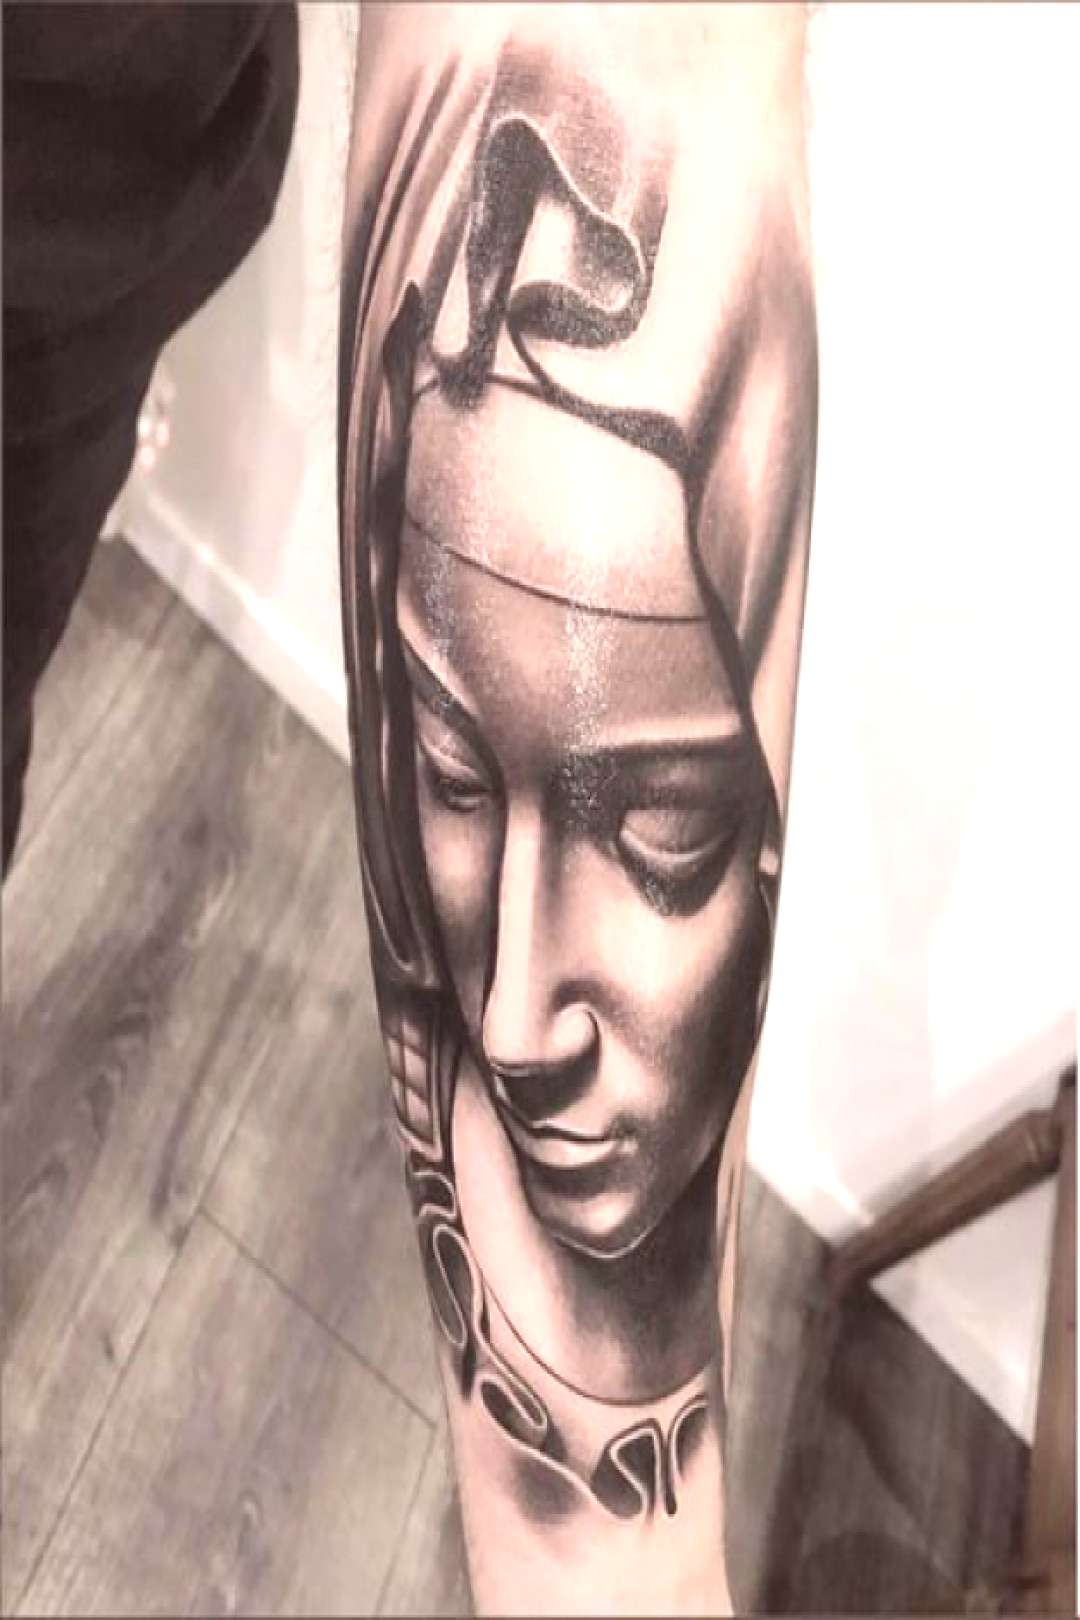 Amazing artist Sneaky Gee @sneakygee13tattoos awesome Michelangelo Virgin Mary arm tattoo!